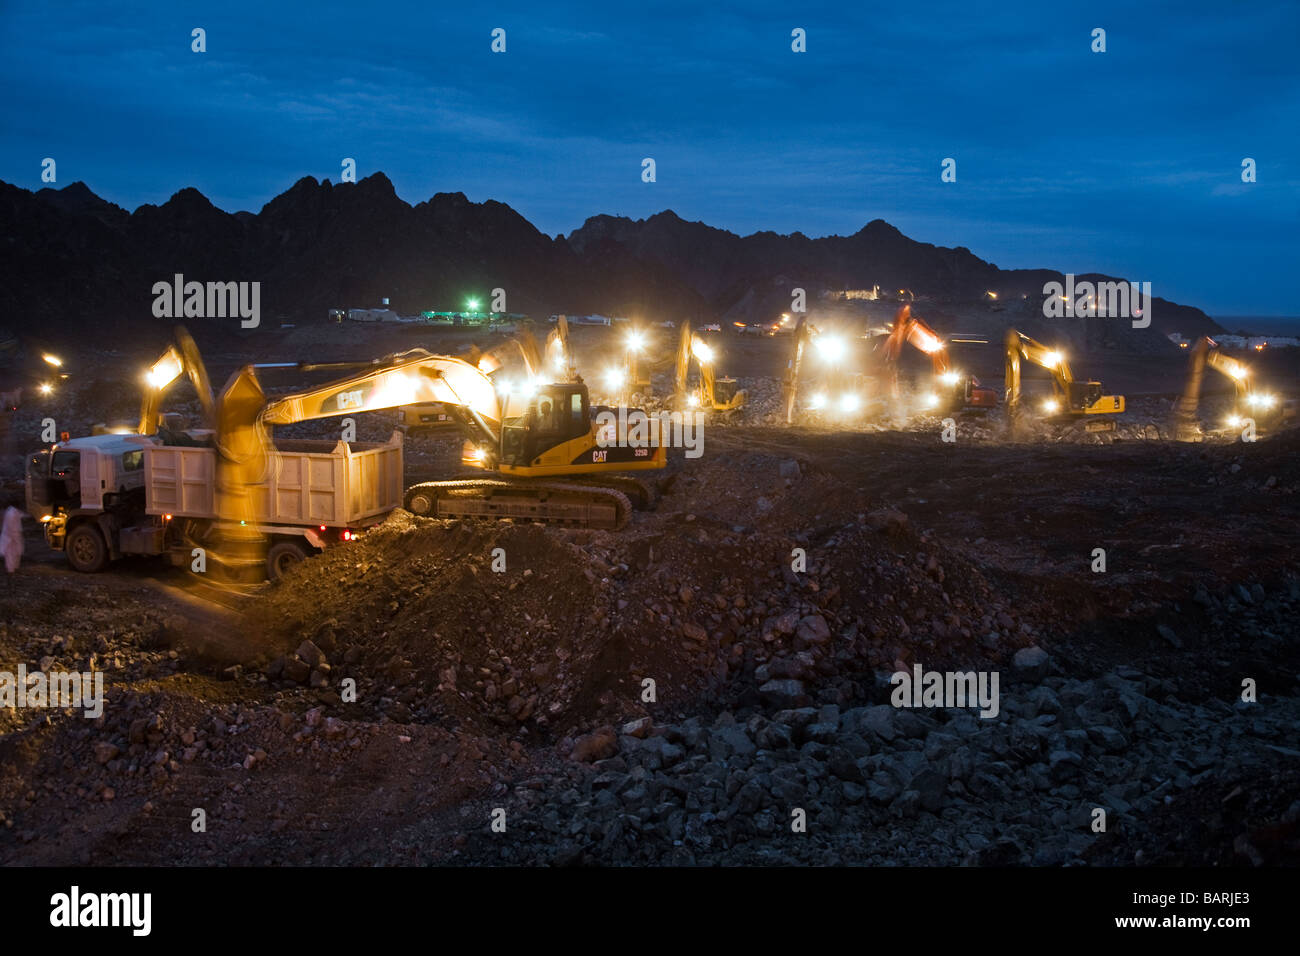 Construction site at night with lots of diggers flattening an area near Mutrah for new buildings nächtliche - Stock Image